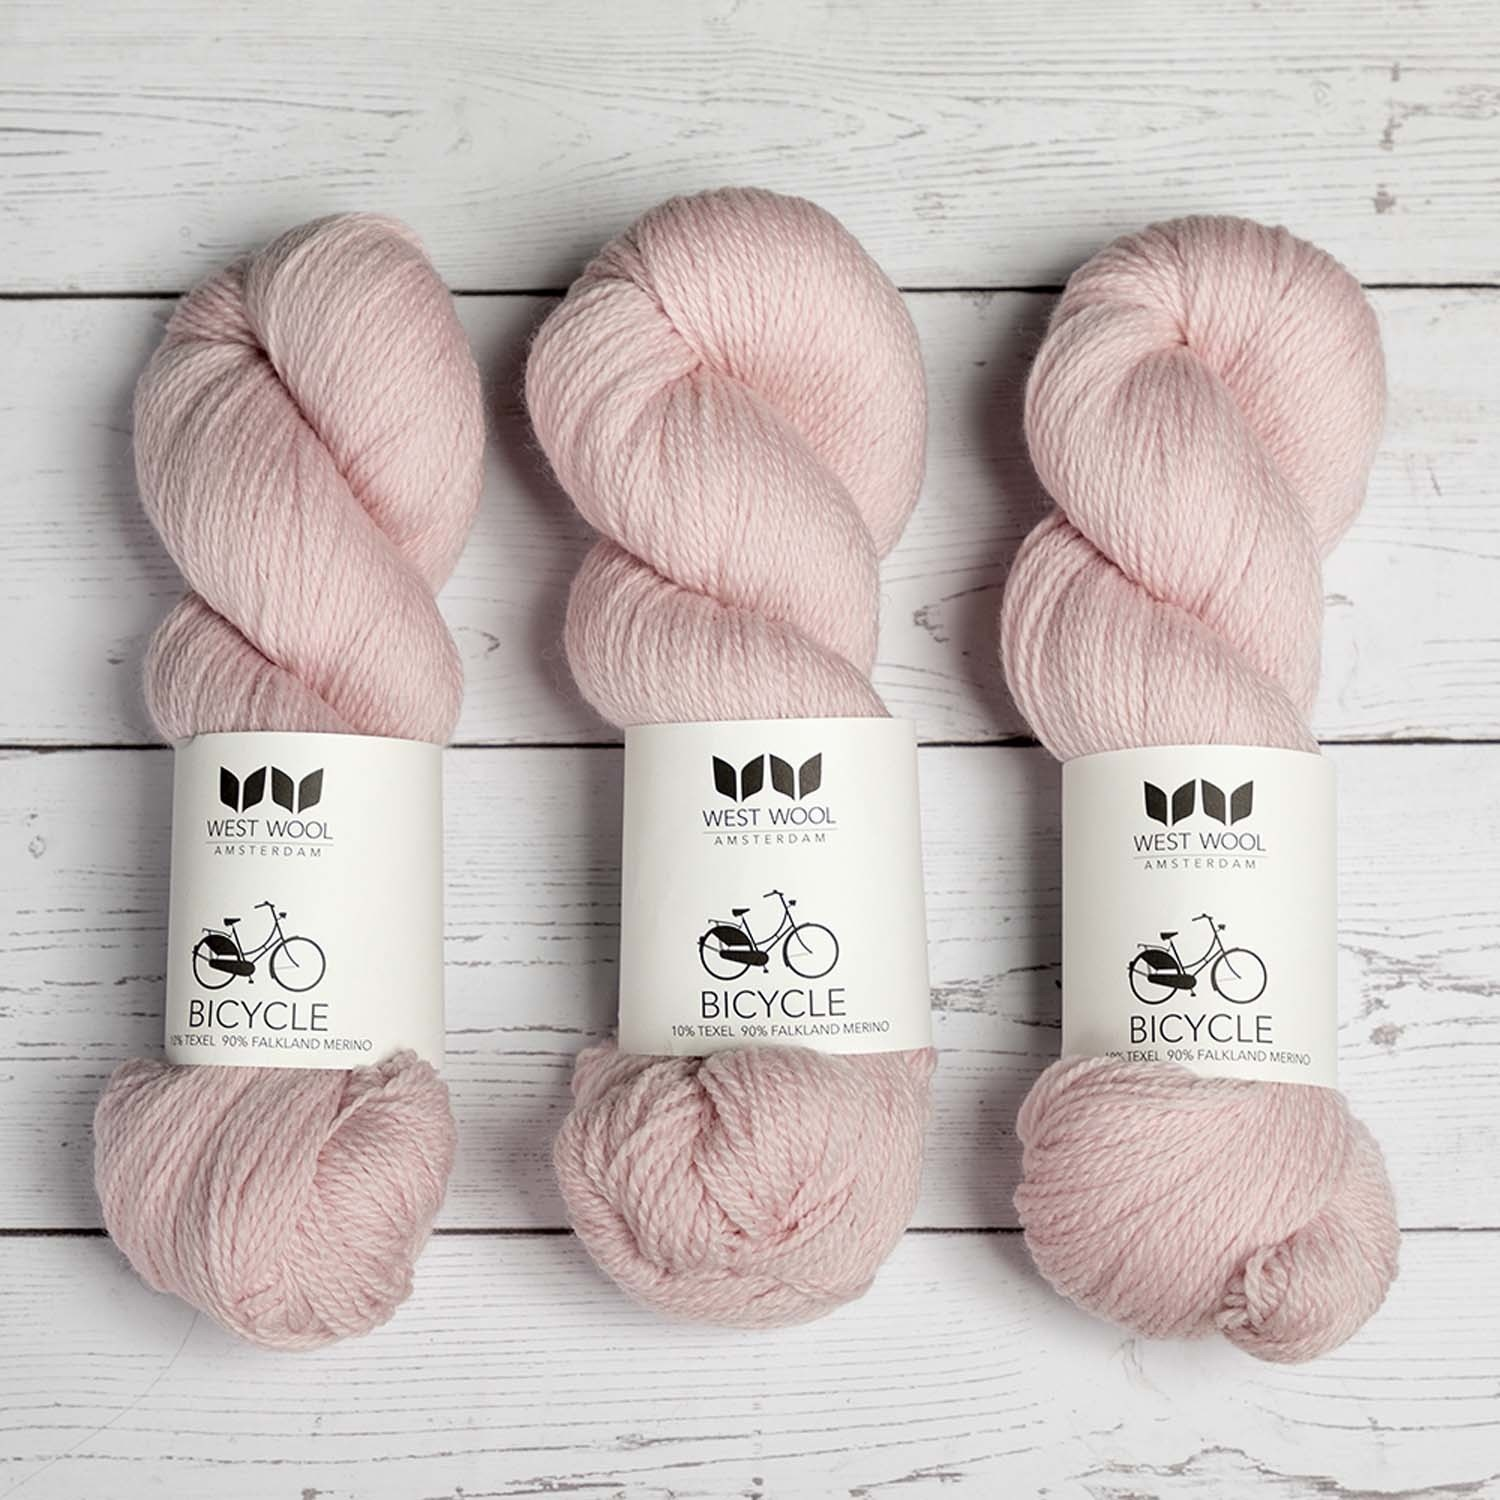 West Wool BICYCLE POWDER